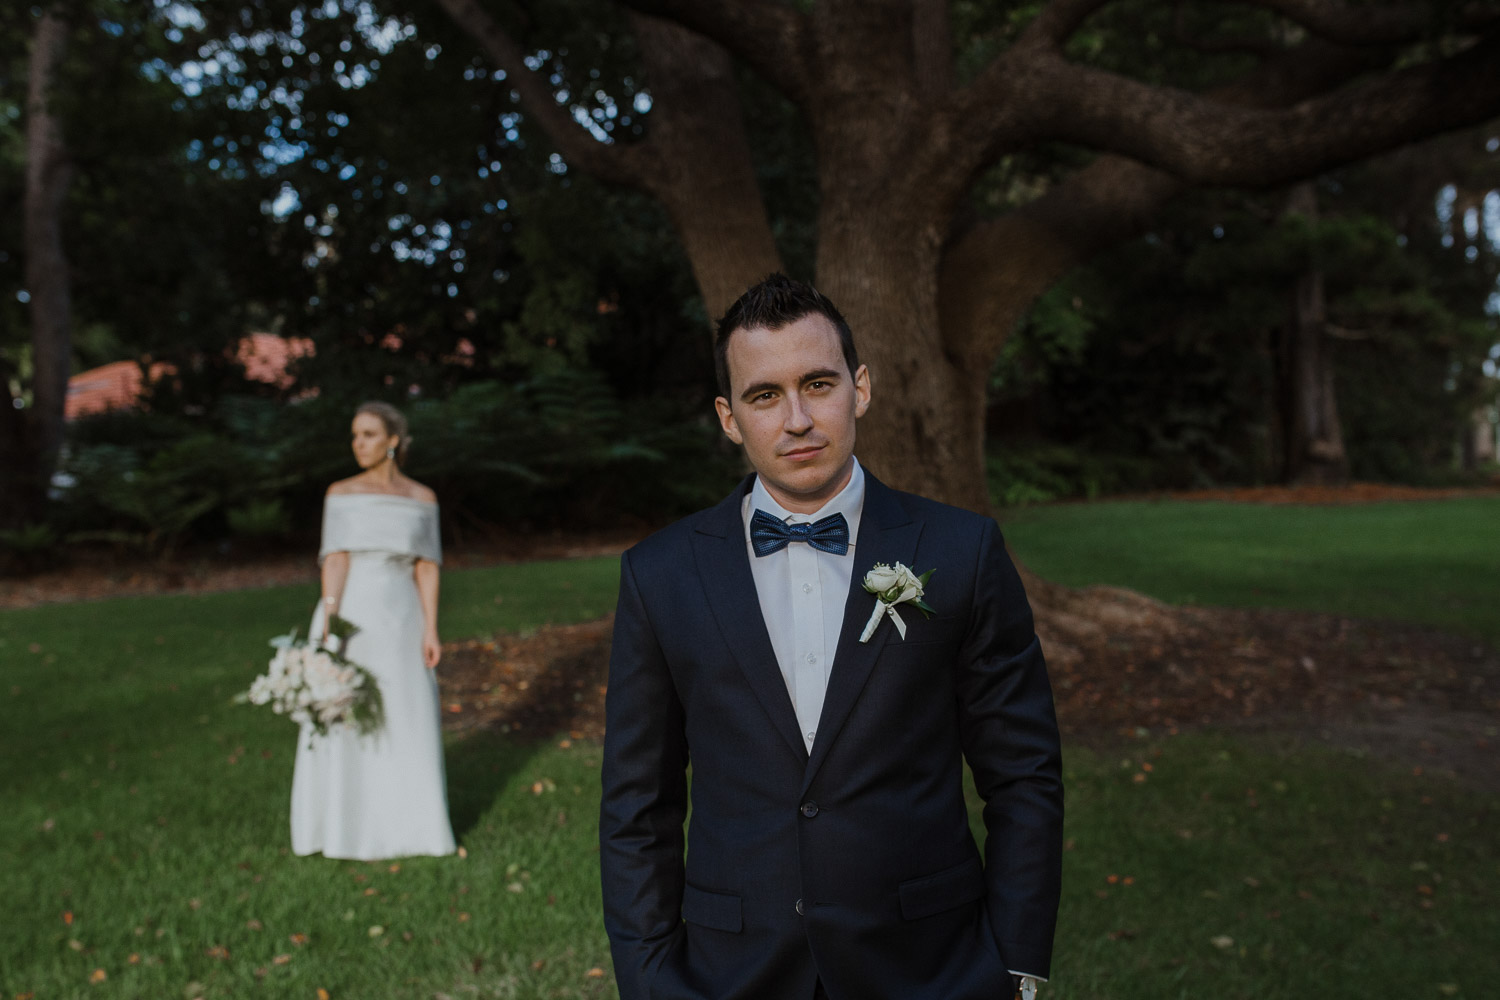 Clements and the Fox weddings